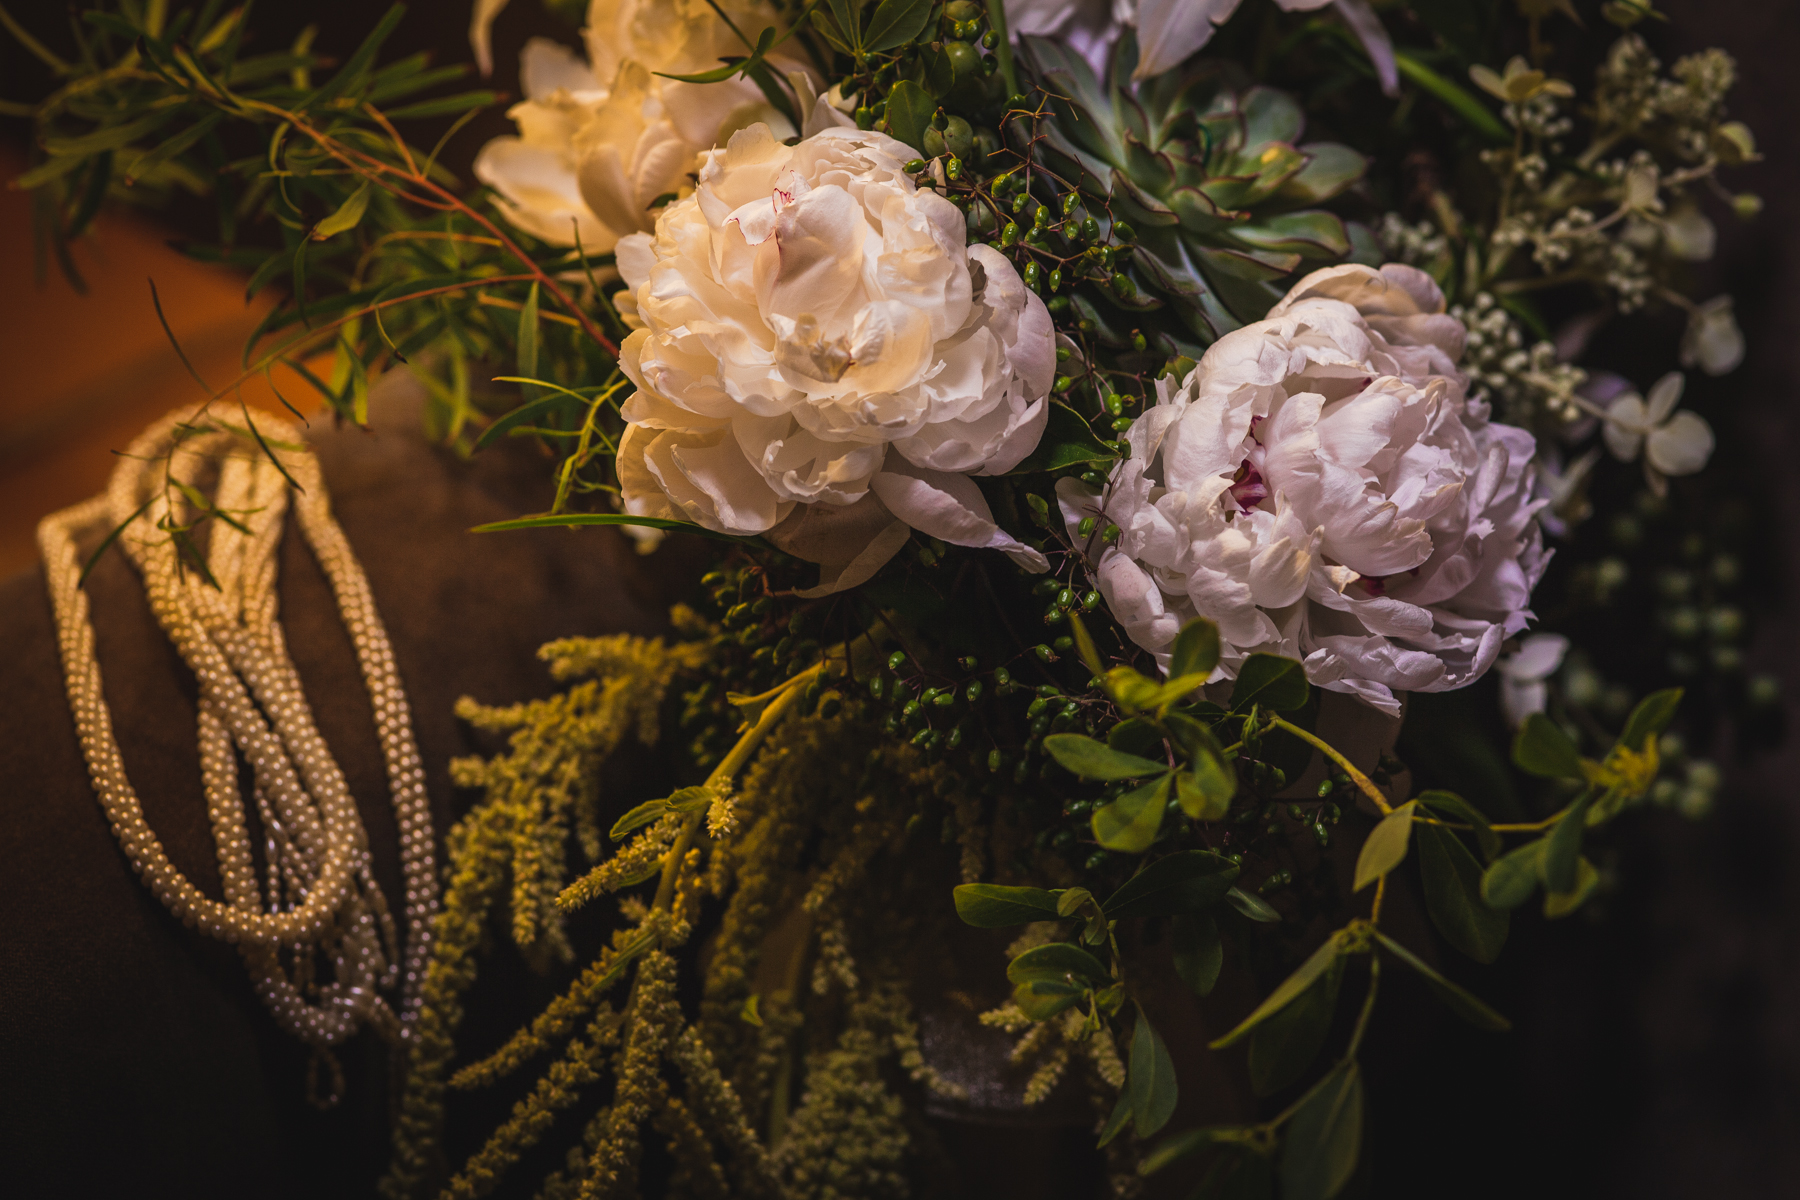 chicago-documentary-wedding-at-a-new-leaf-vintage-inspired-jumping-the-broom-oriana-koren-0786.jpg